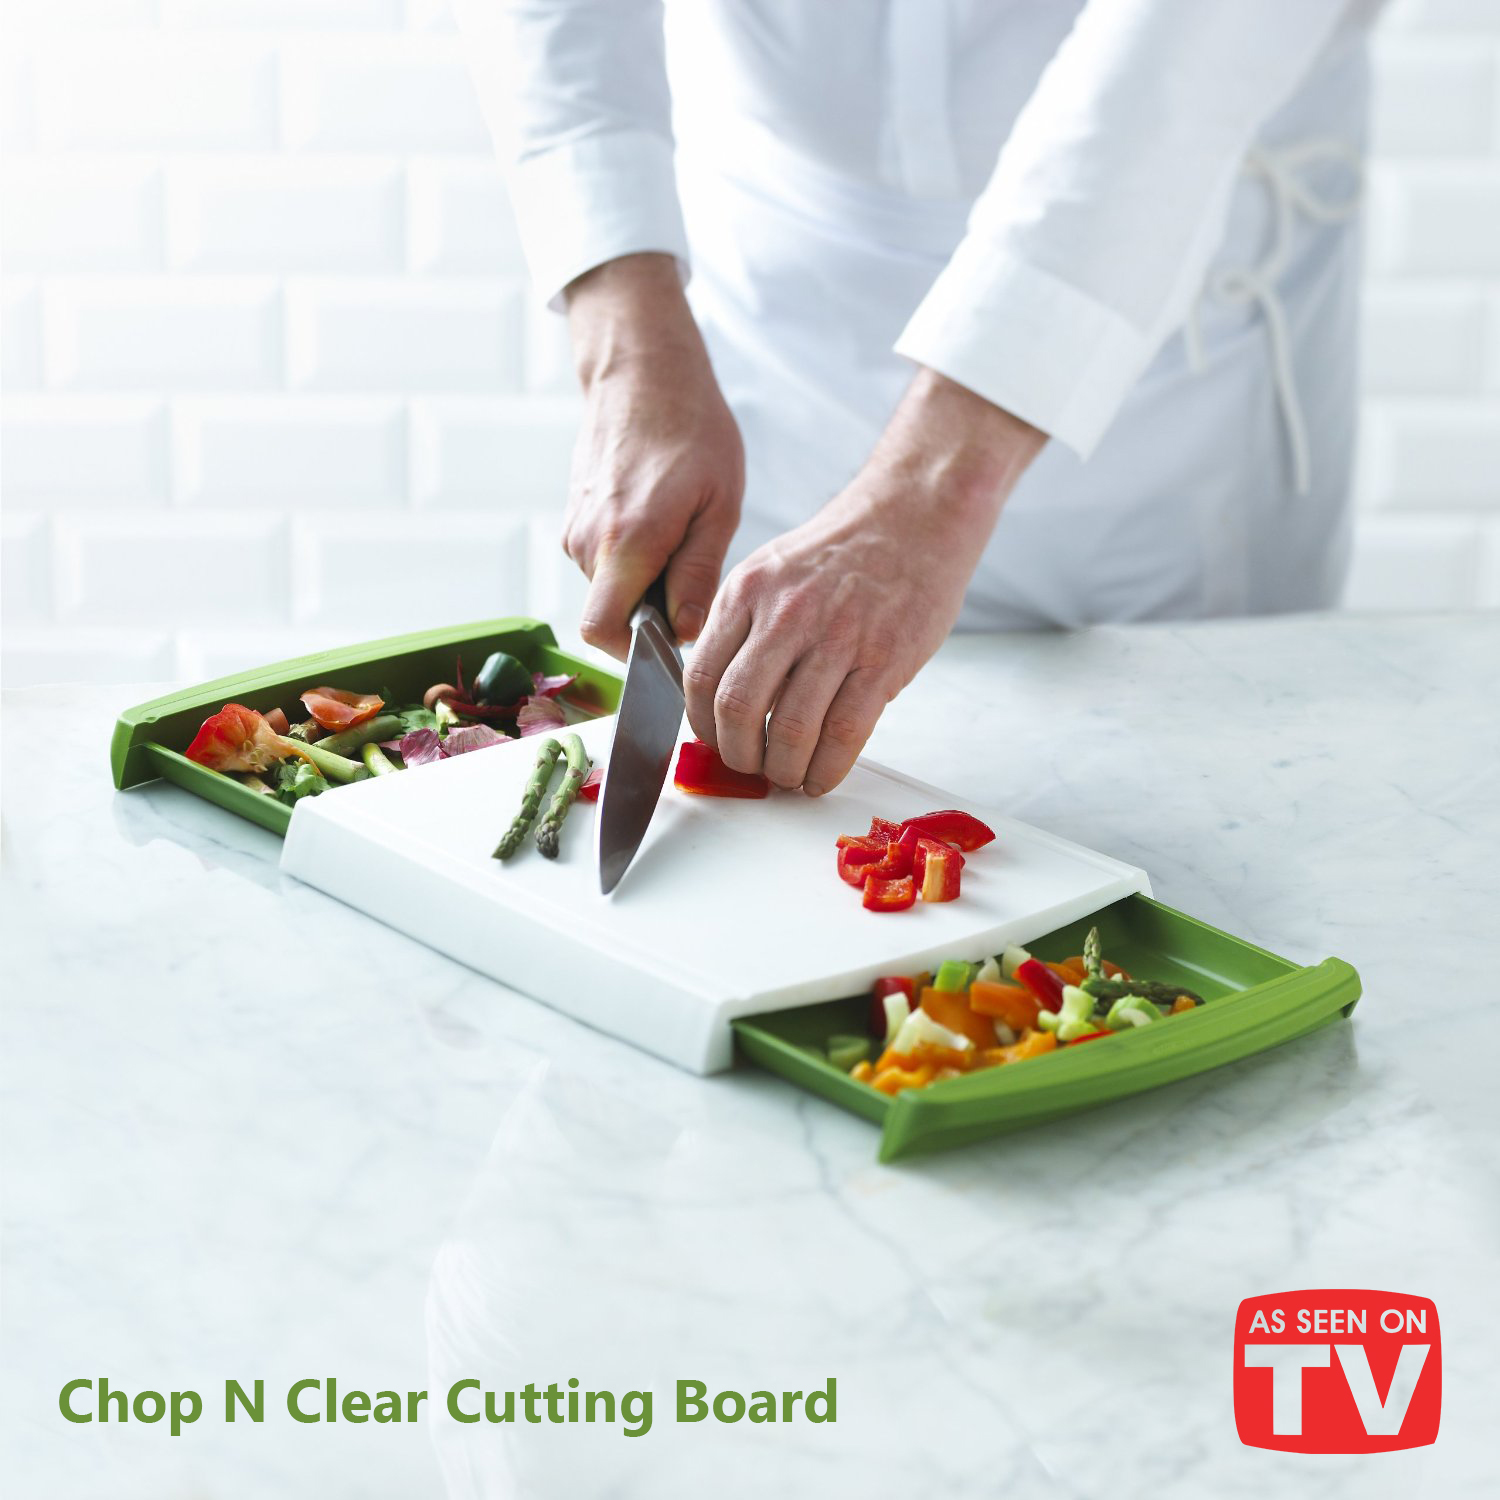 Chop n' Clear Cutting Board